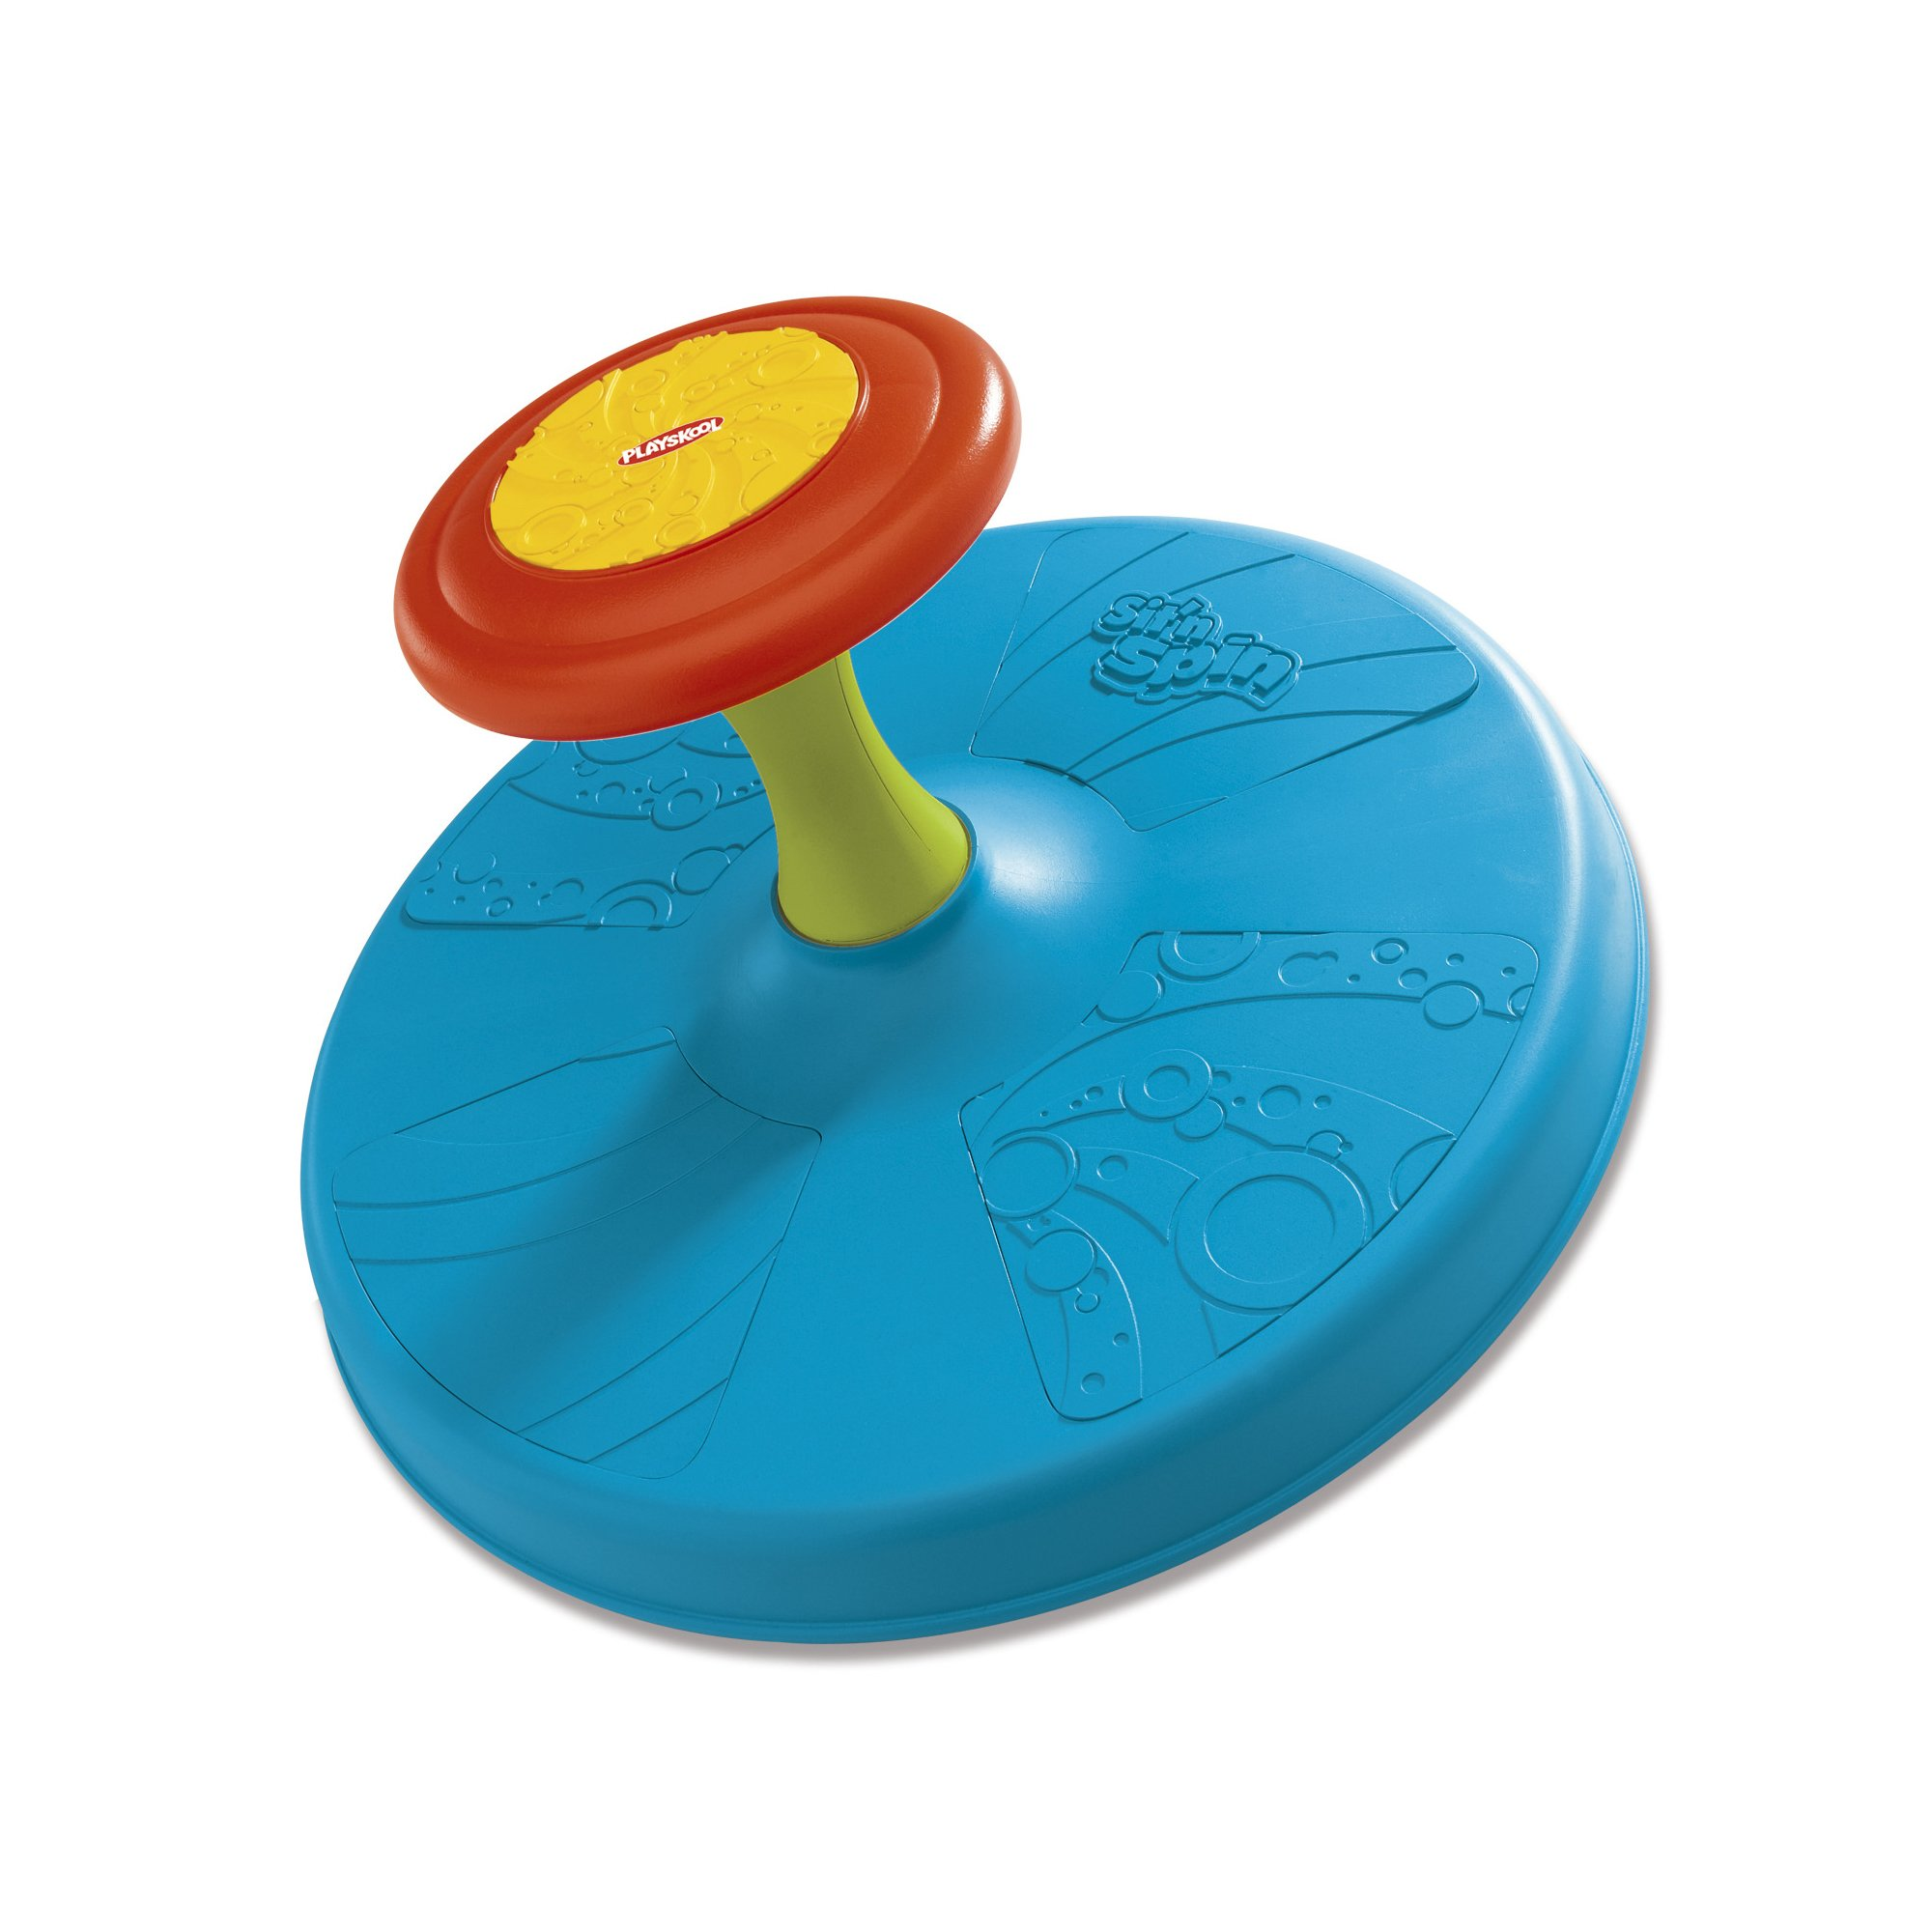 Great Toy To Burn Off Energy